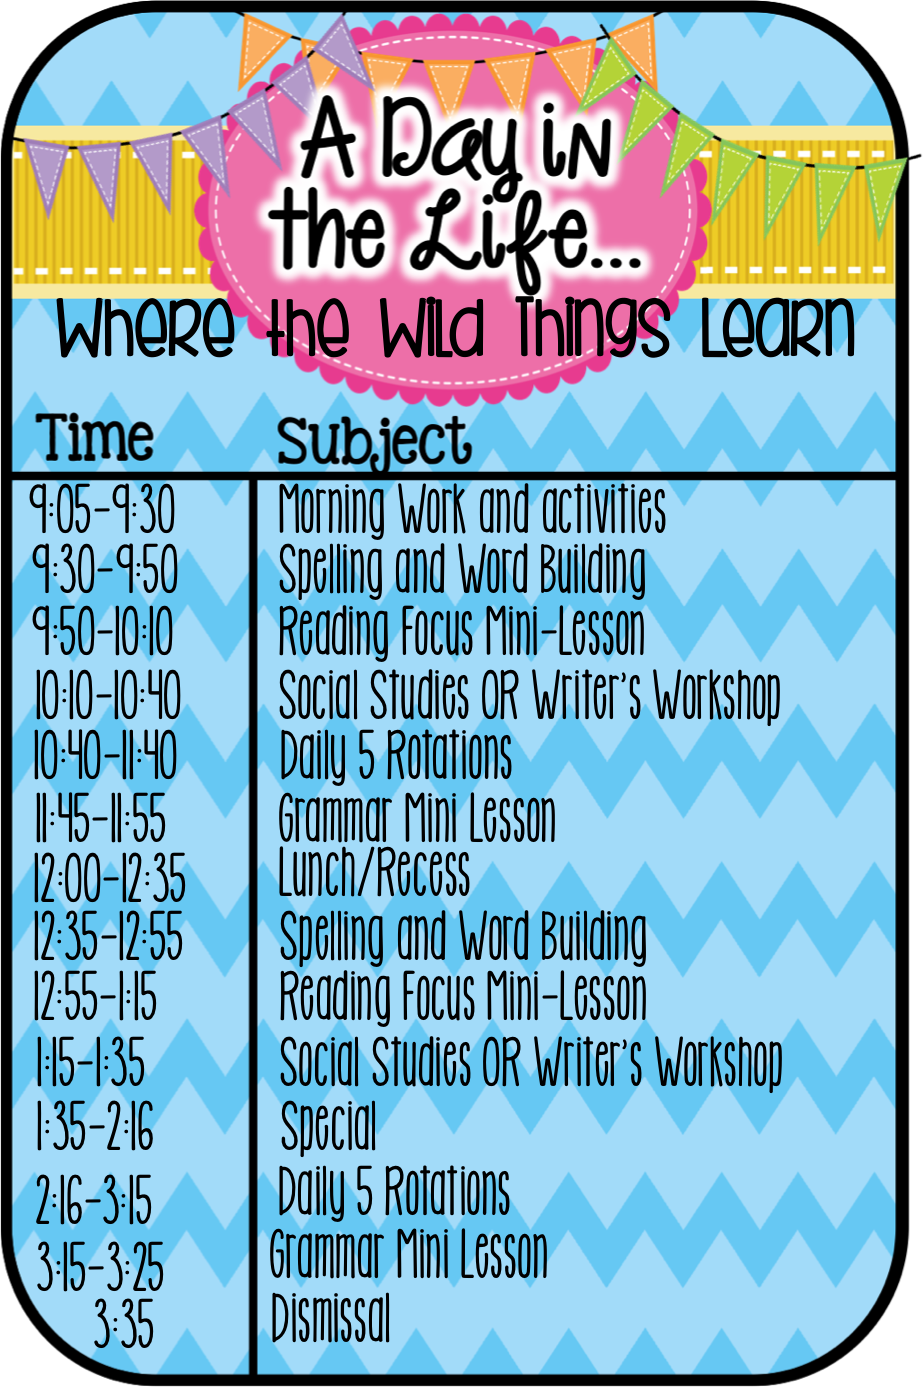 C:\Users\rwil313\Desktop\Example of a Primary School Timetable.png